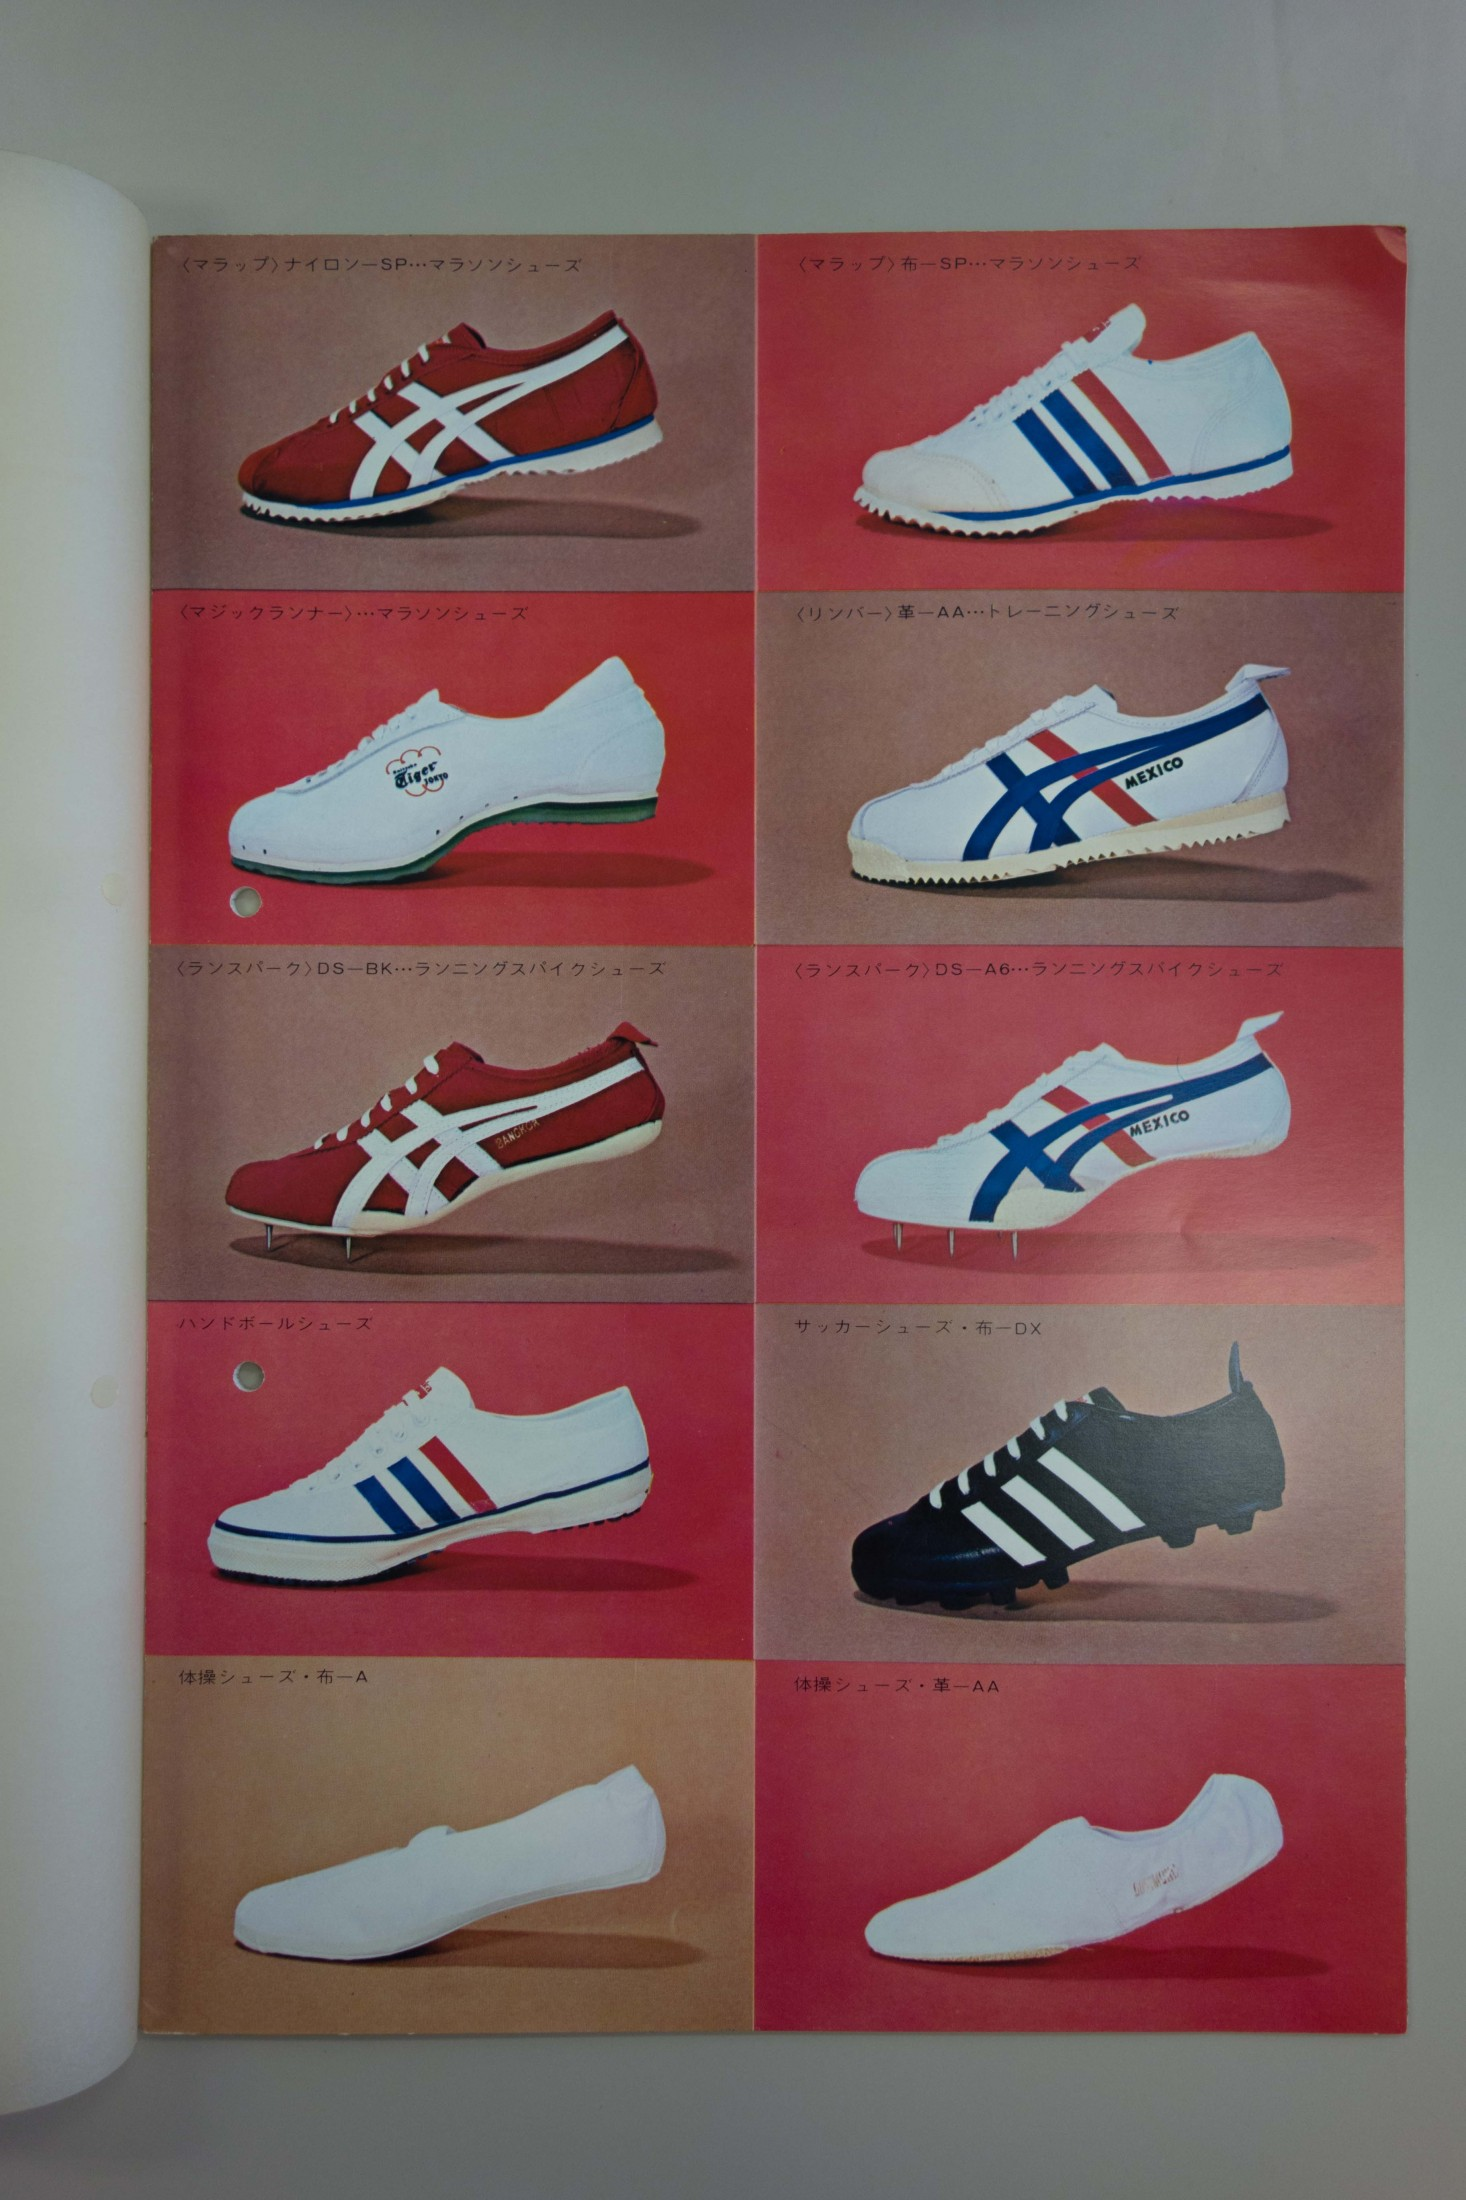 100% authentic a14bb b2c67 Onitsuka Tiger and ASICS: The History 1949-1970 by Gary ...